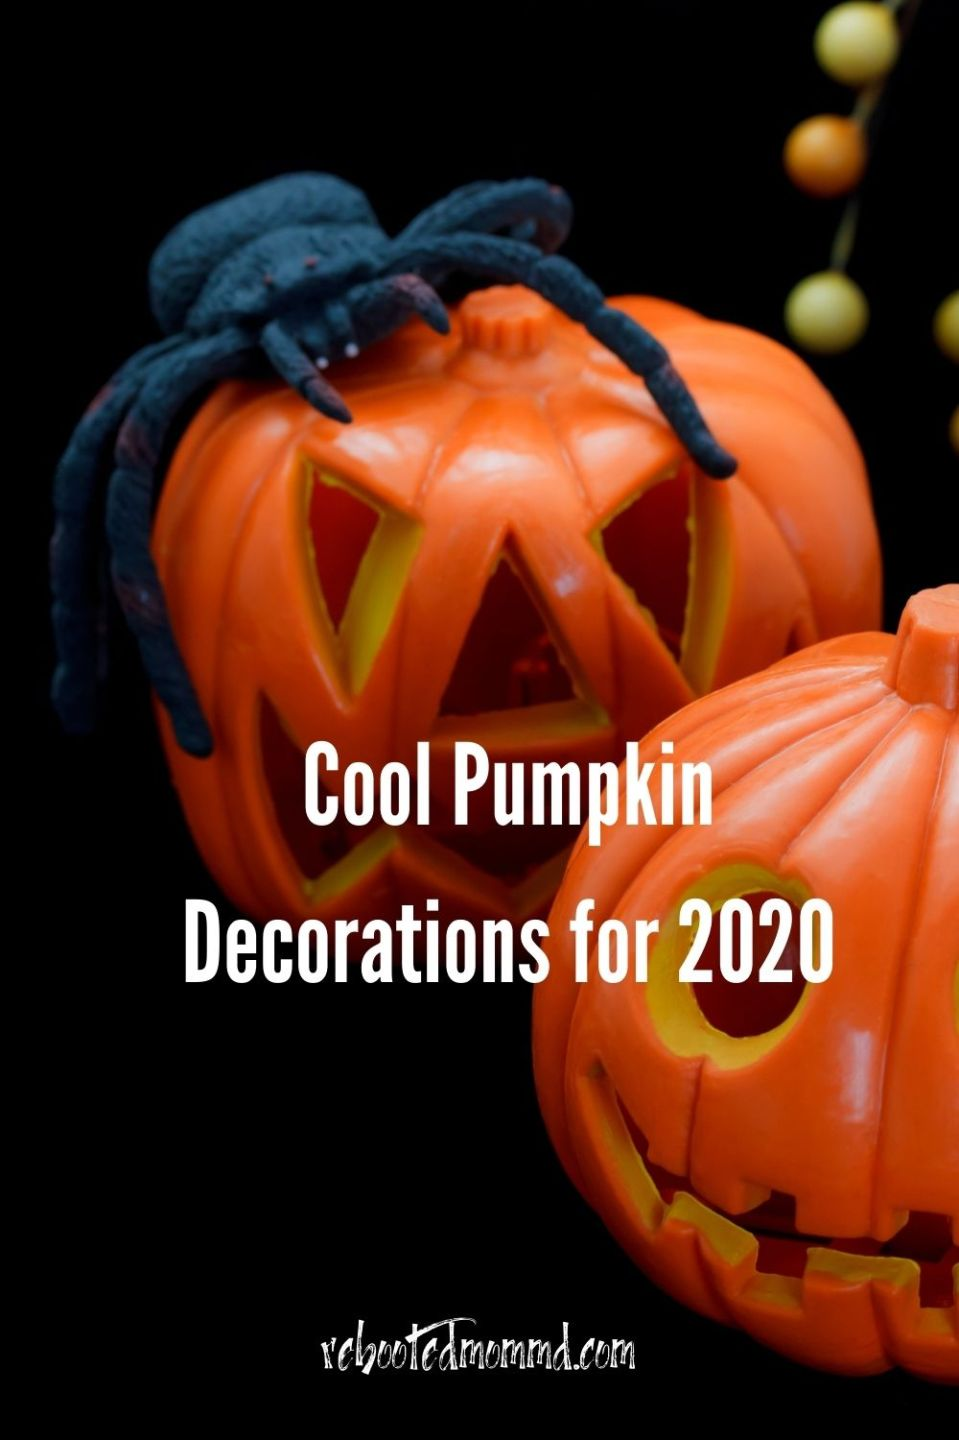 Halloween: Cool Pumpkin Decorations for 2020